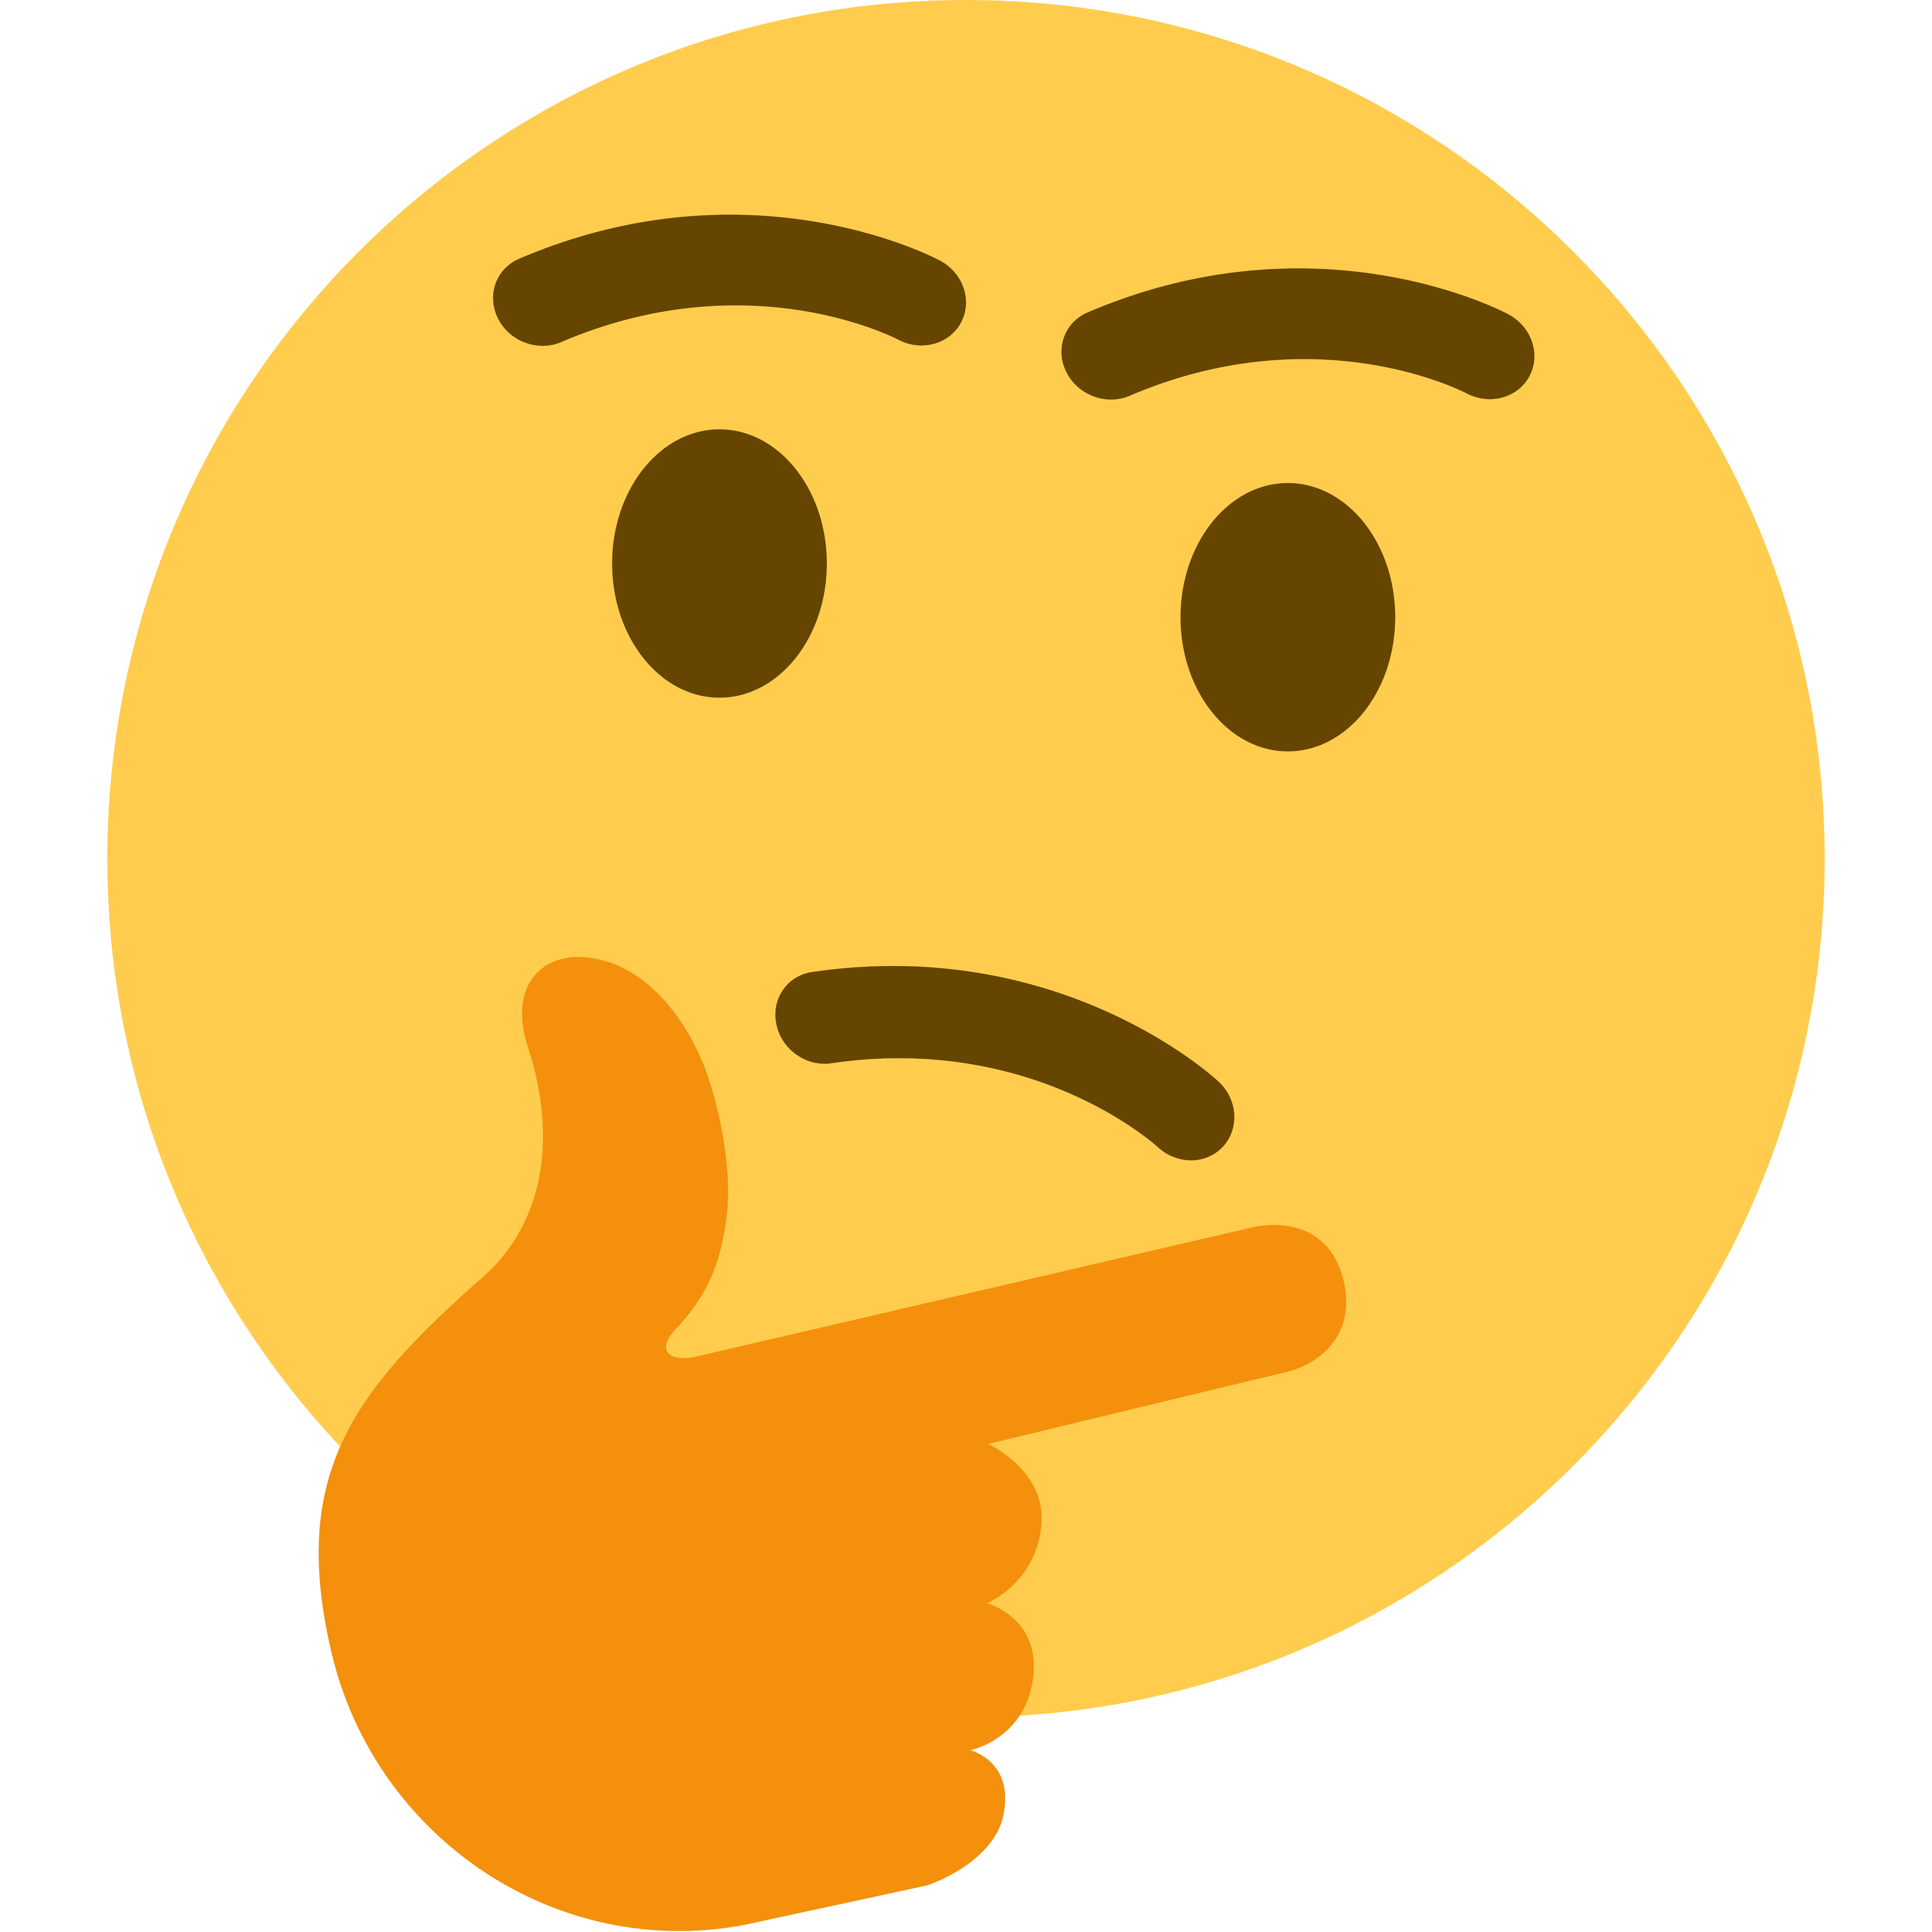 Thought Thinking Emoji Free HQ Image PNG Image